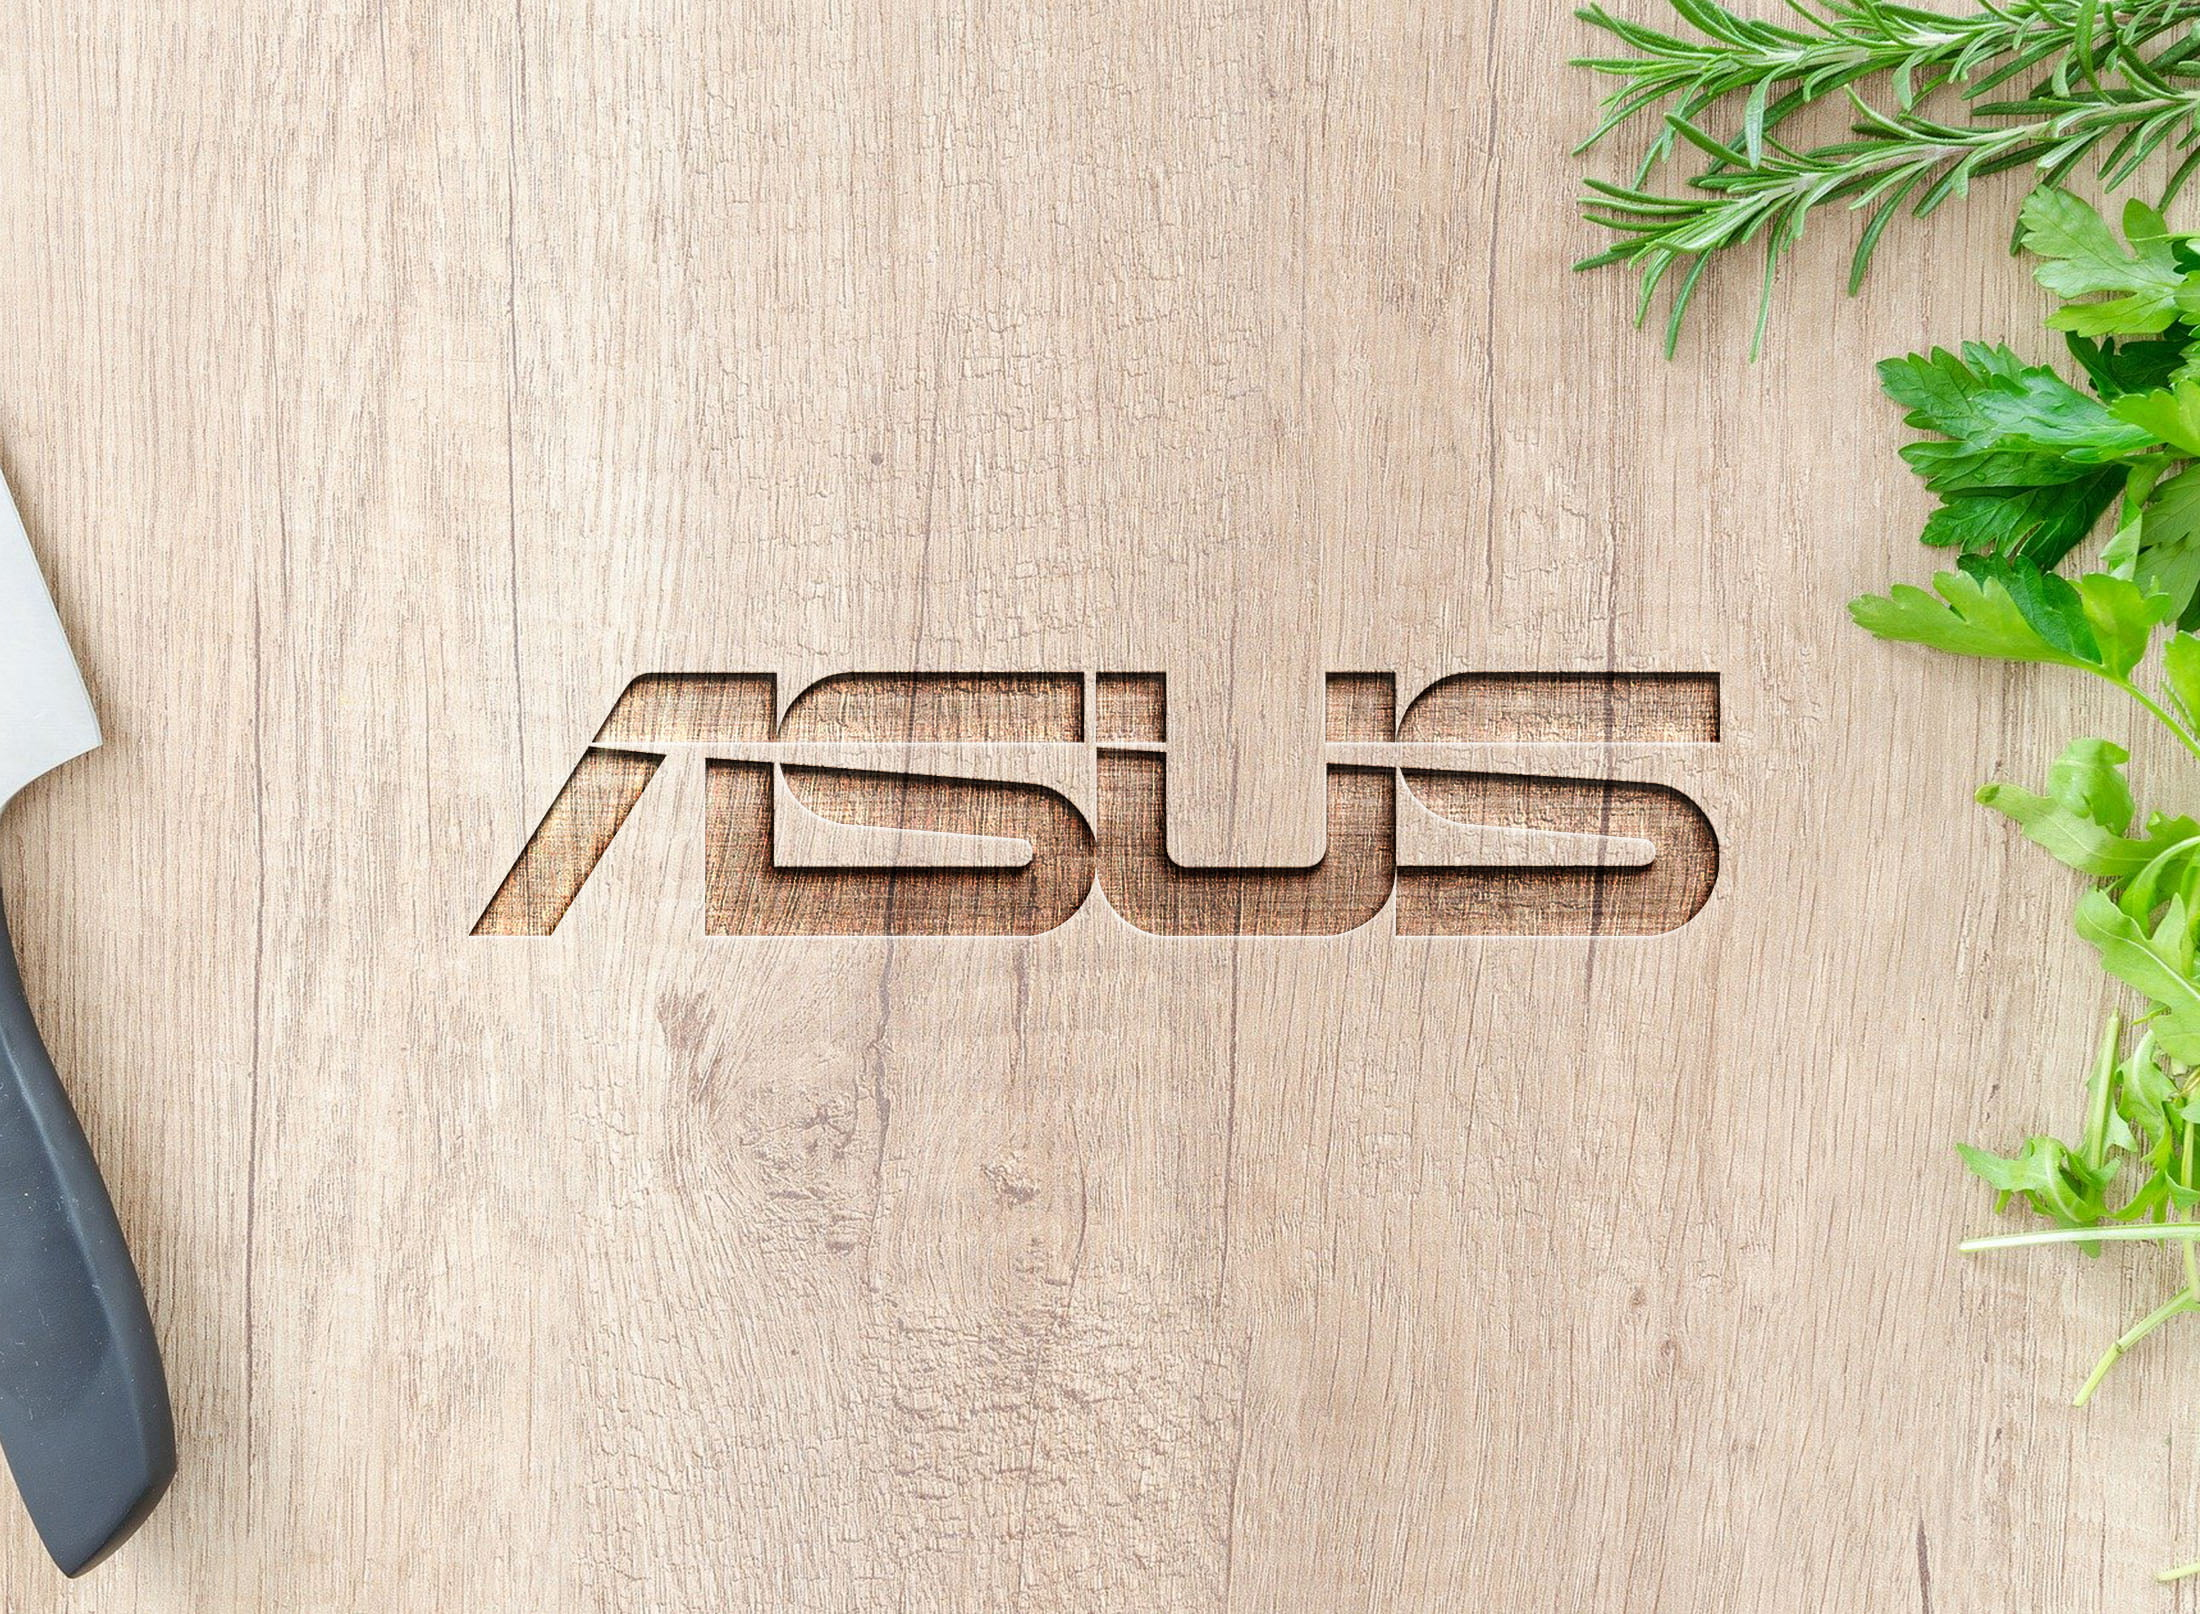 Asus on curved wood mockup